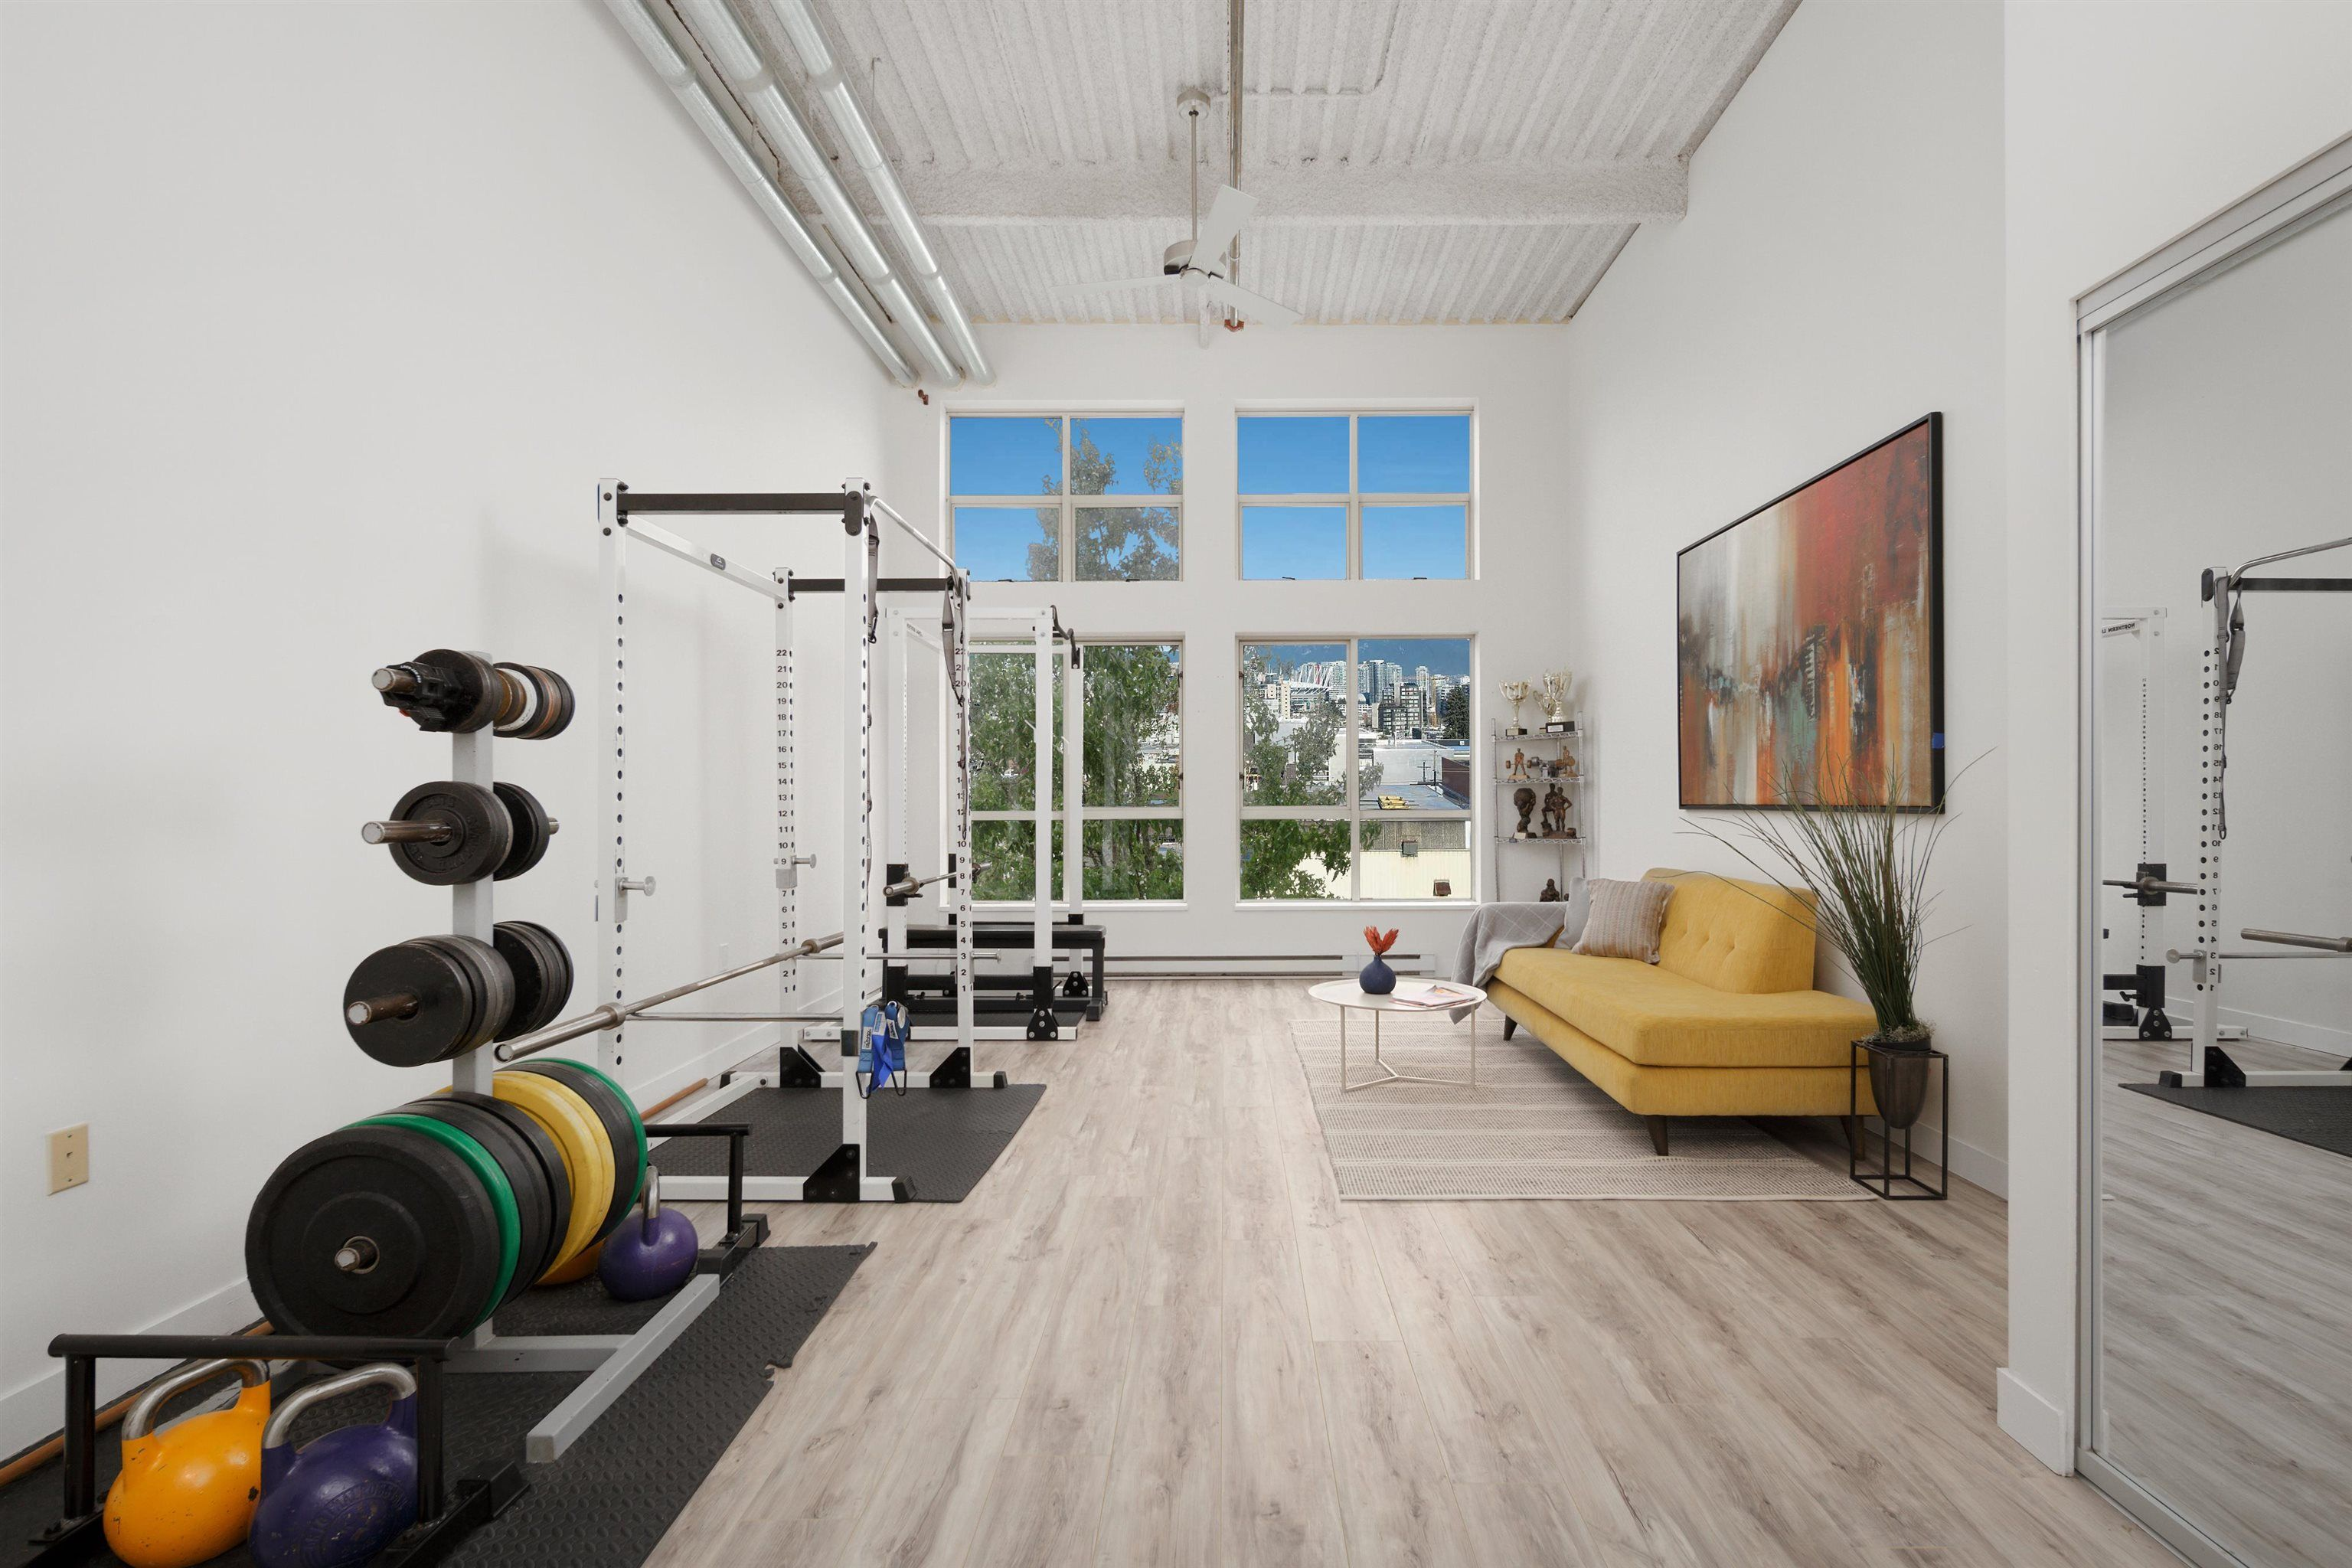 """Main Photo: 301 338 W 8TH Avenue in Vancouver: Mount Pleasant VW Condo for sale in """"LOFT 338"""" (Vancouver West)  : MLS®# R2615229"""